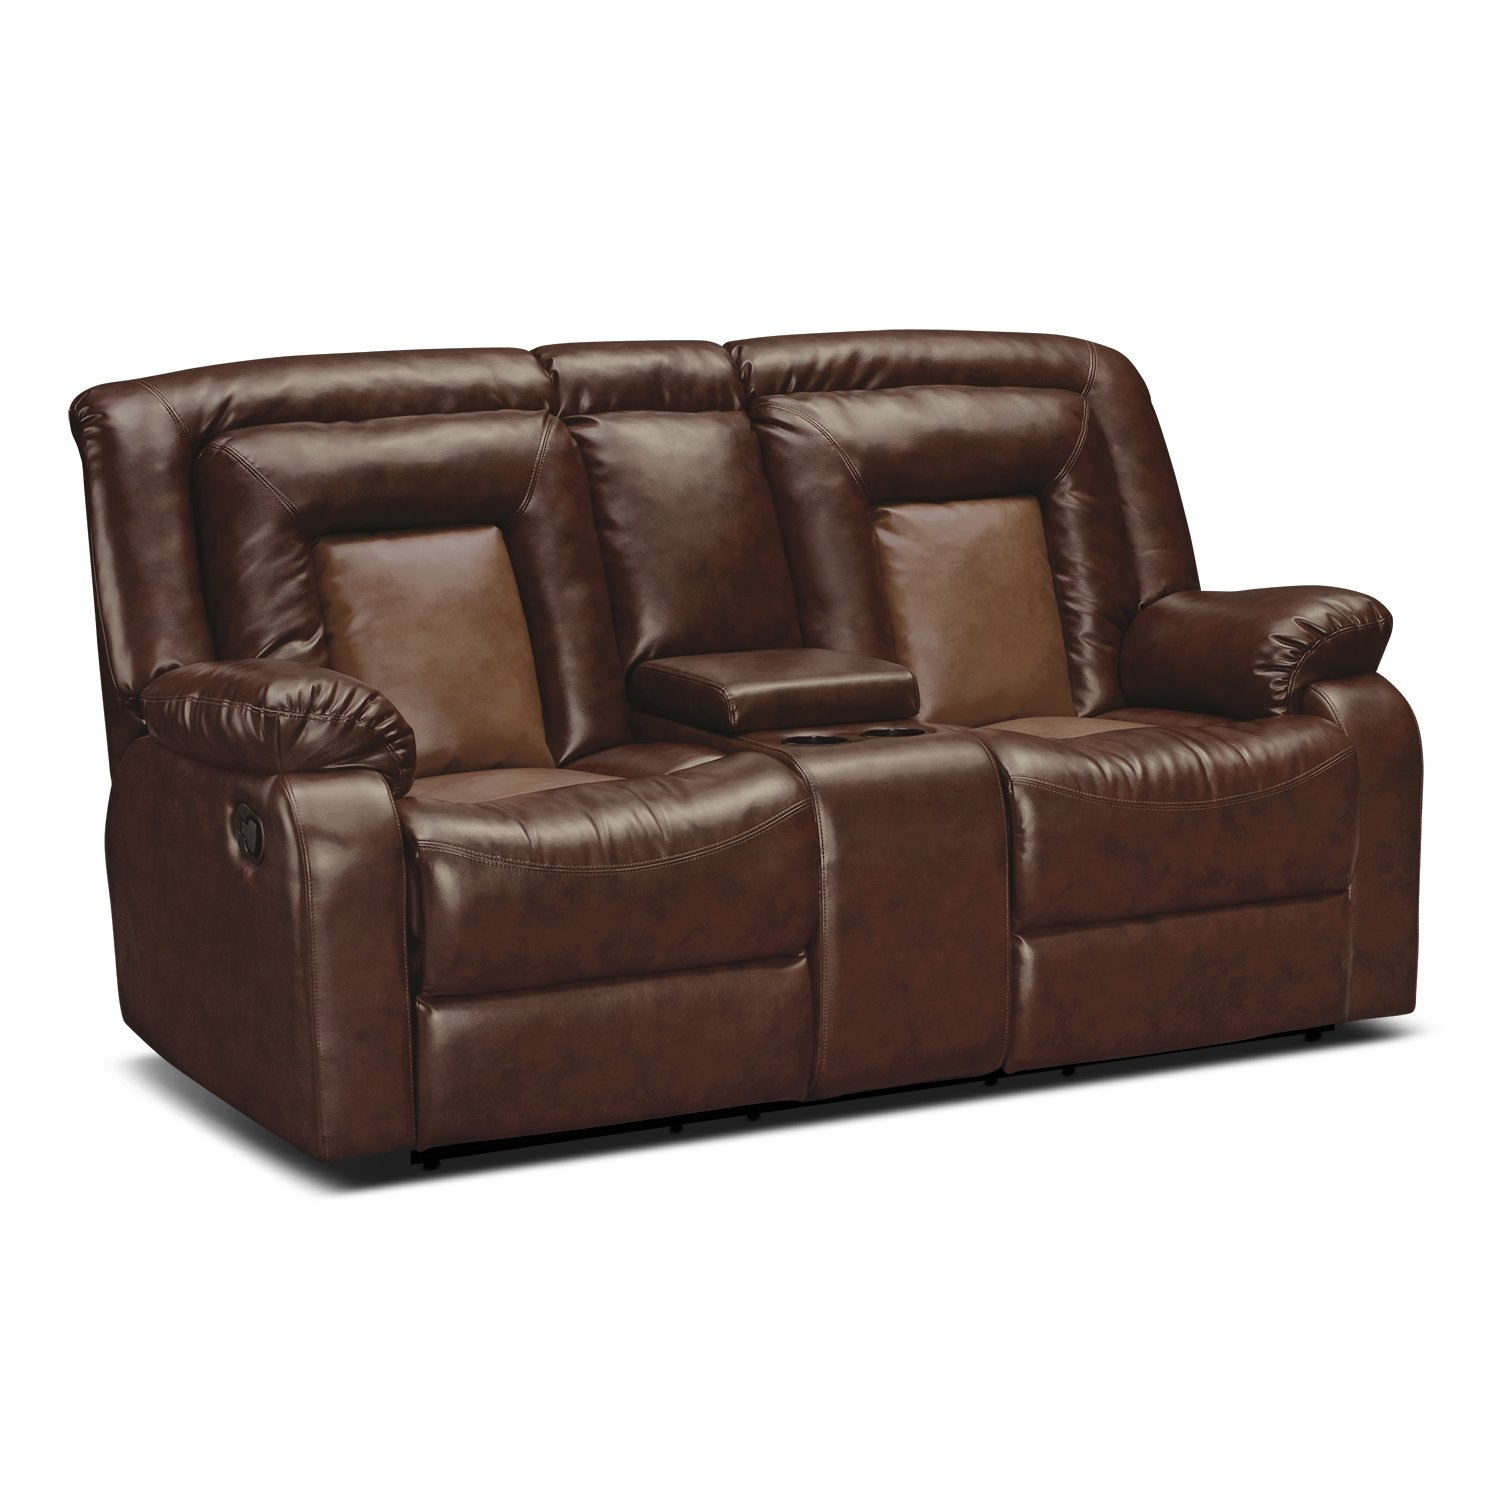 Amazon Roundhill Furniture Kmax 2 Toned Dual Reclining Sofa